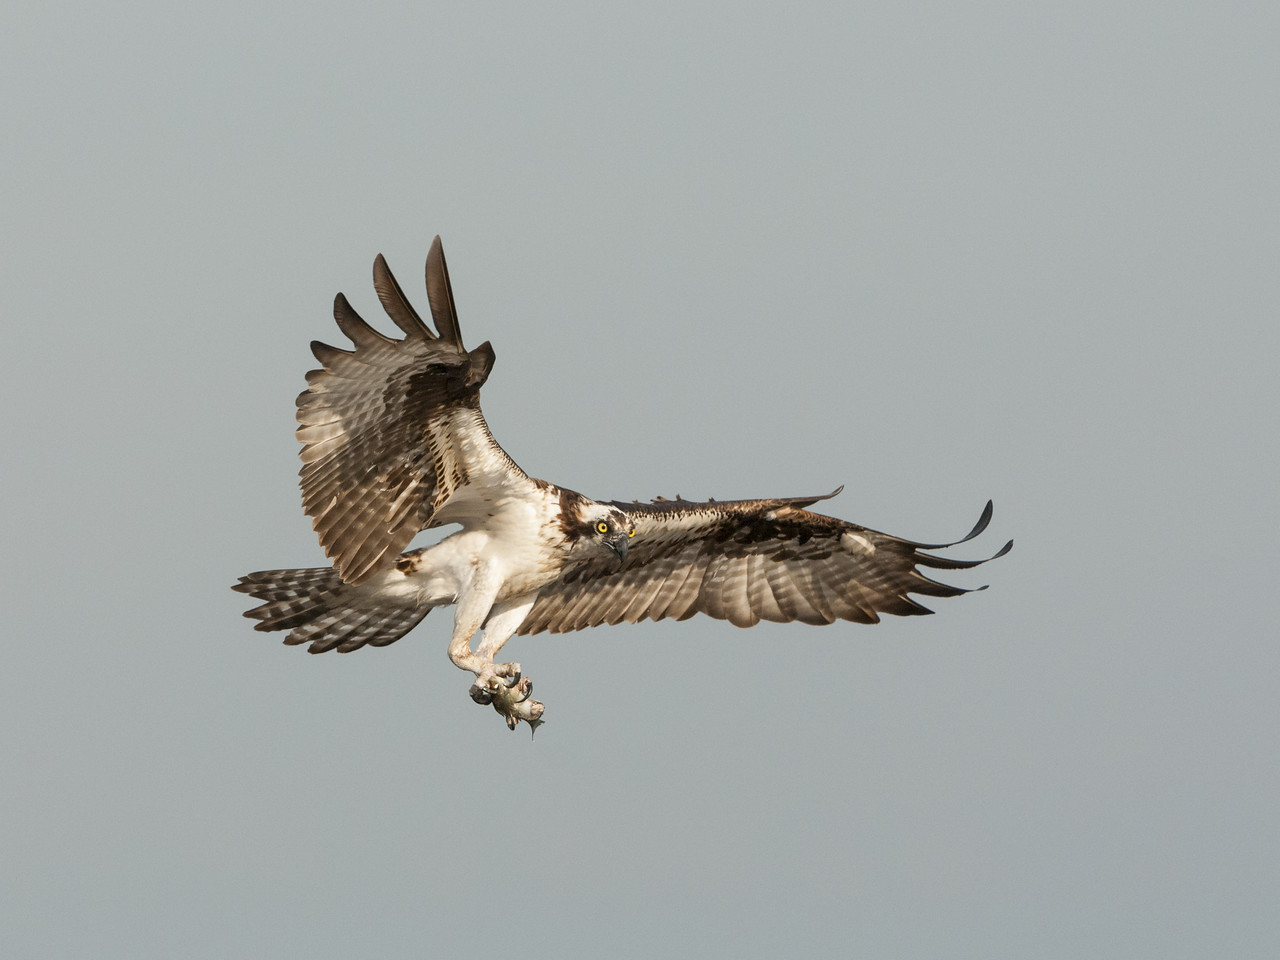 Osprey In Flight with Fish